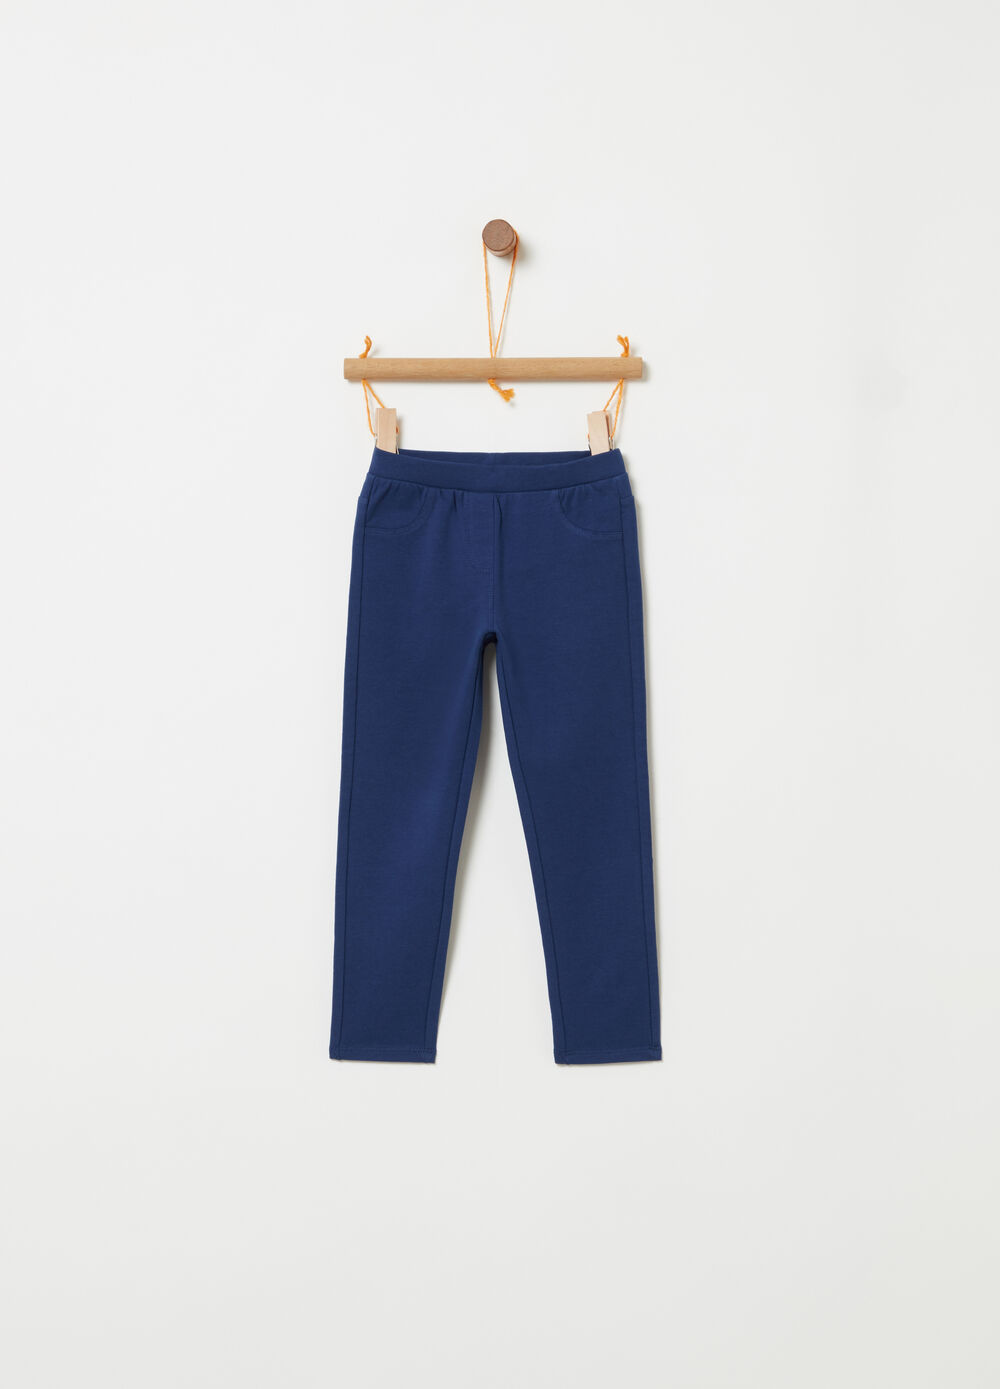 Fitted trousers in lightweight fleece